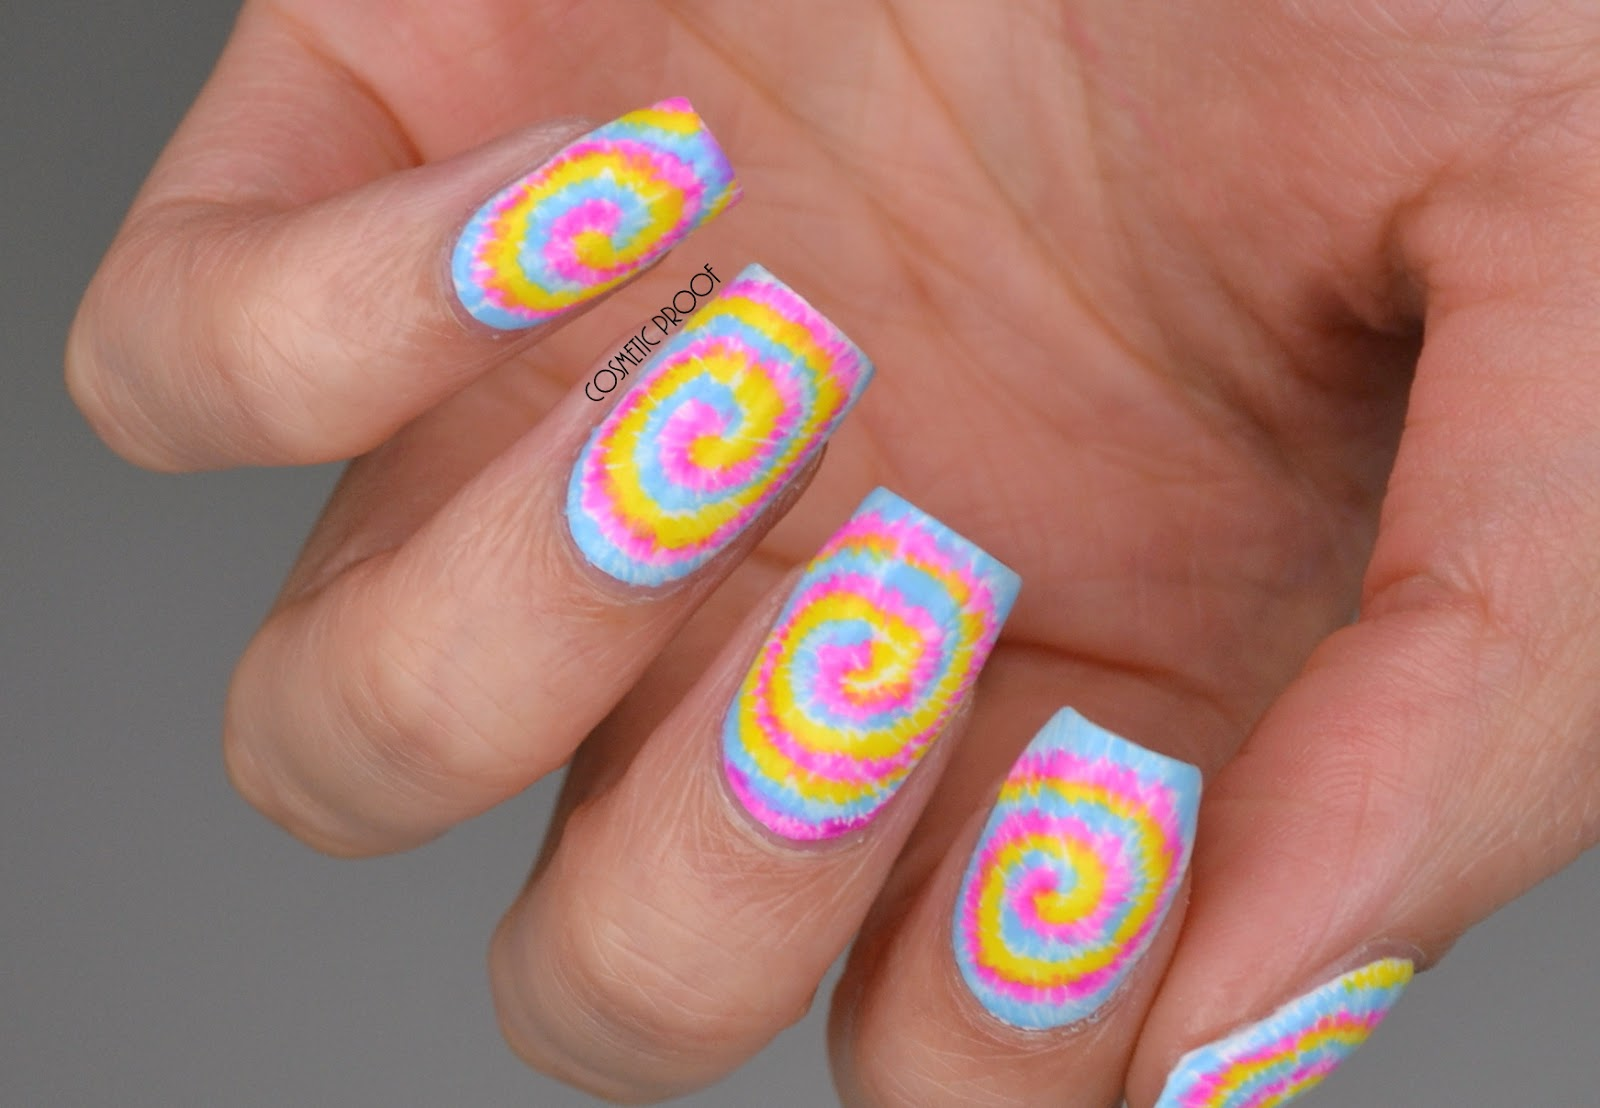 Nails Bcd Nail Art Challenge Week 1 Tie Dye Bcdnails Cosmetic